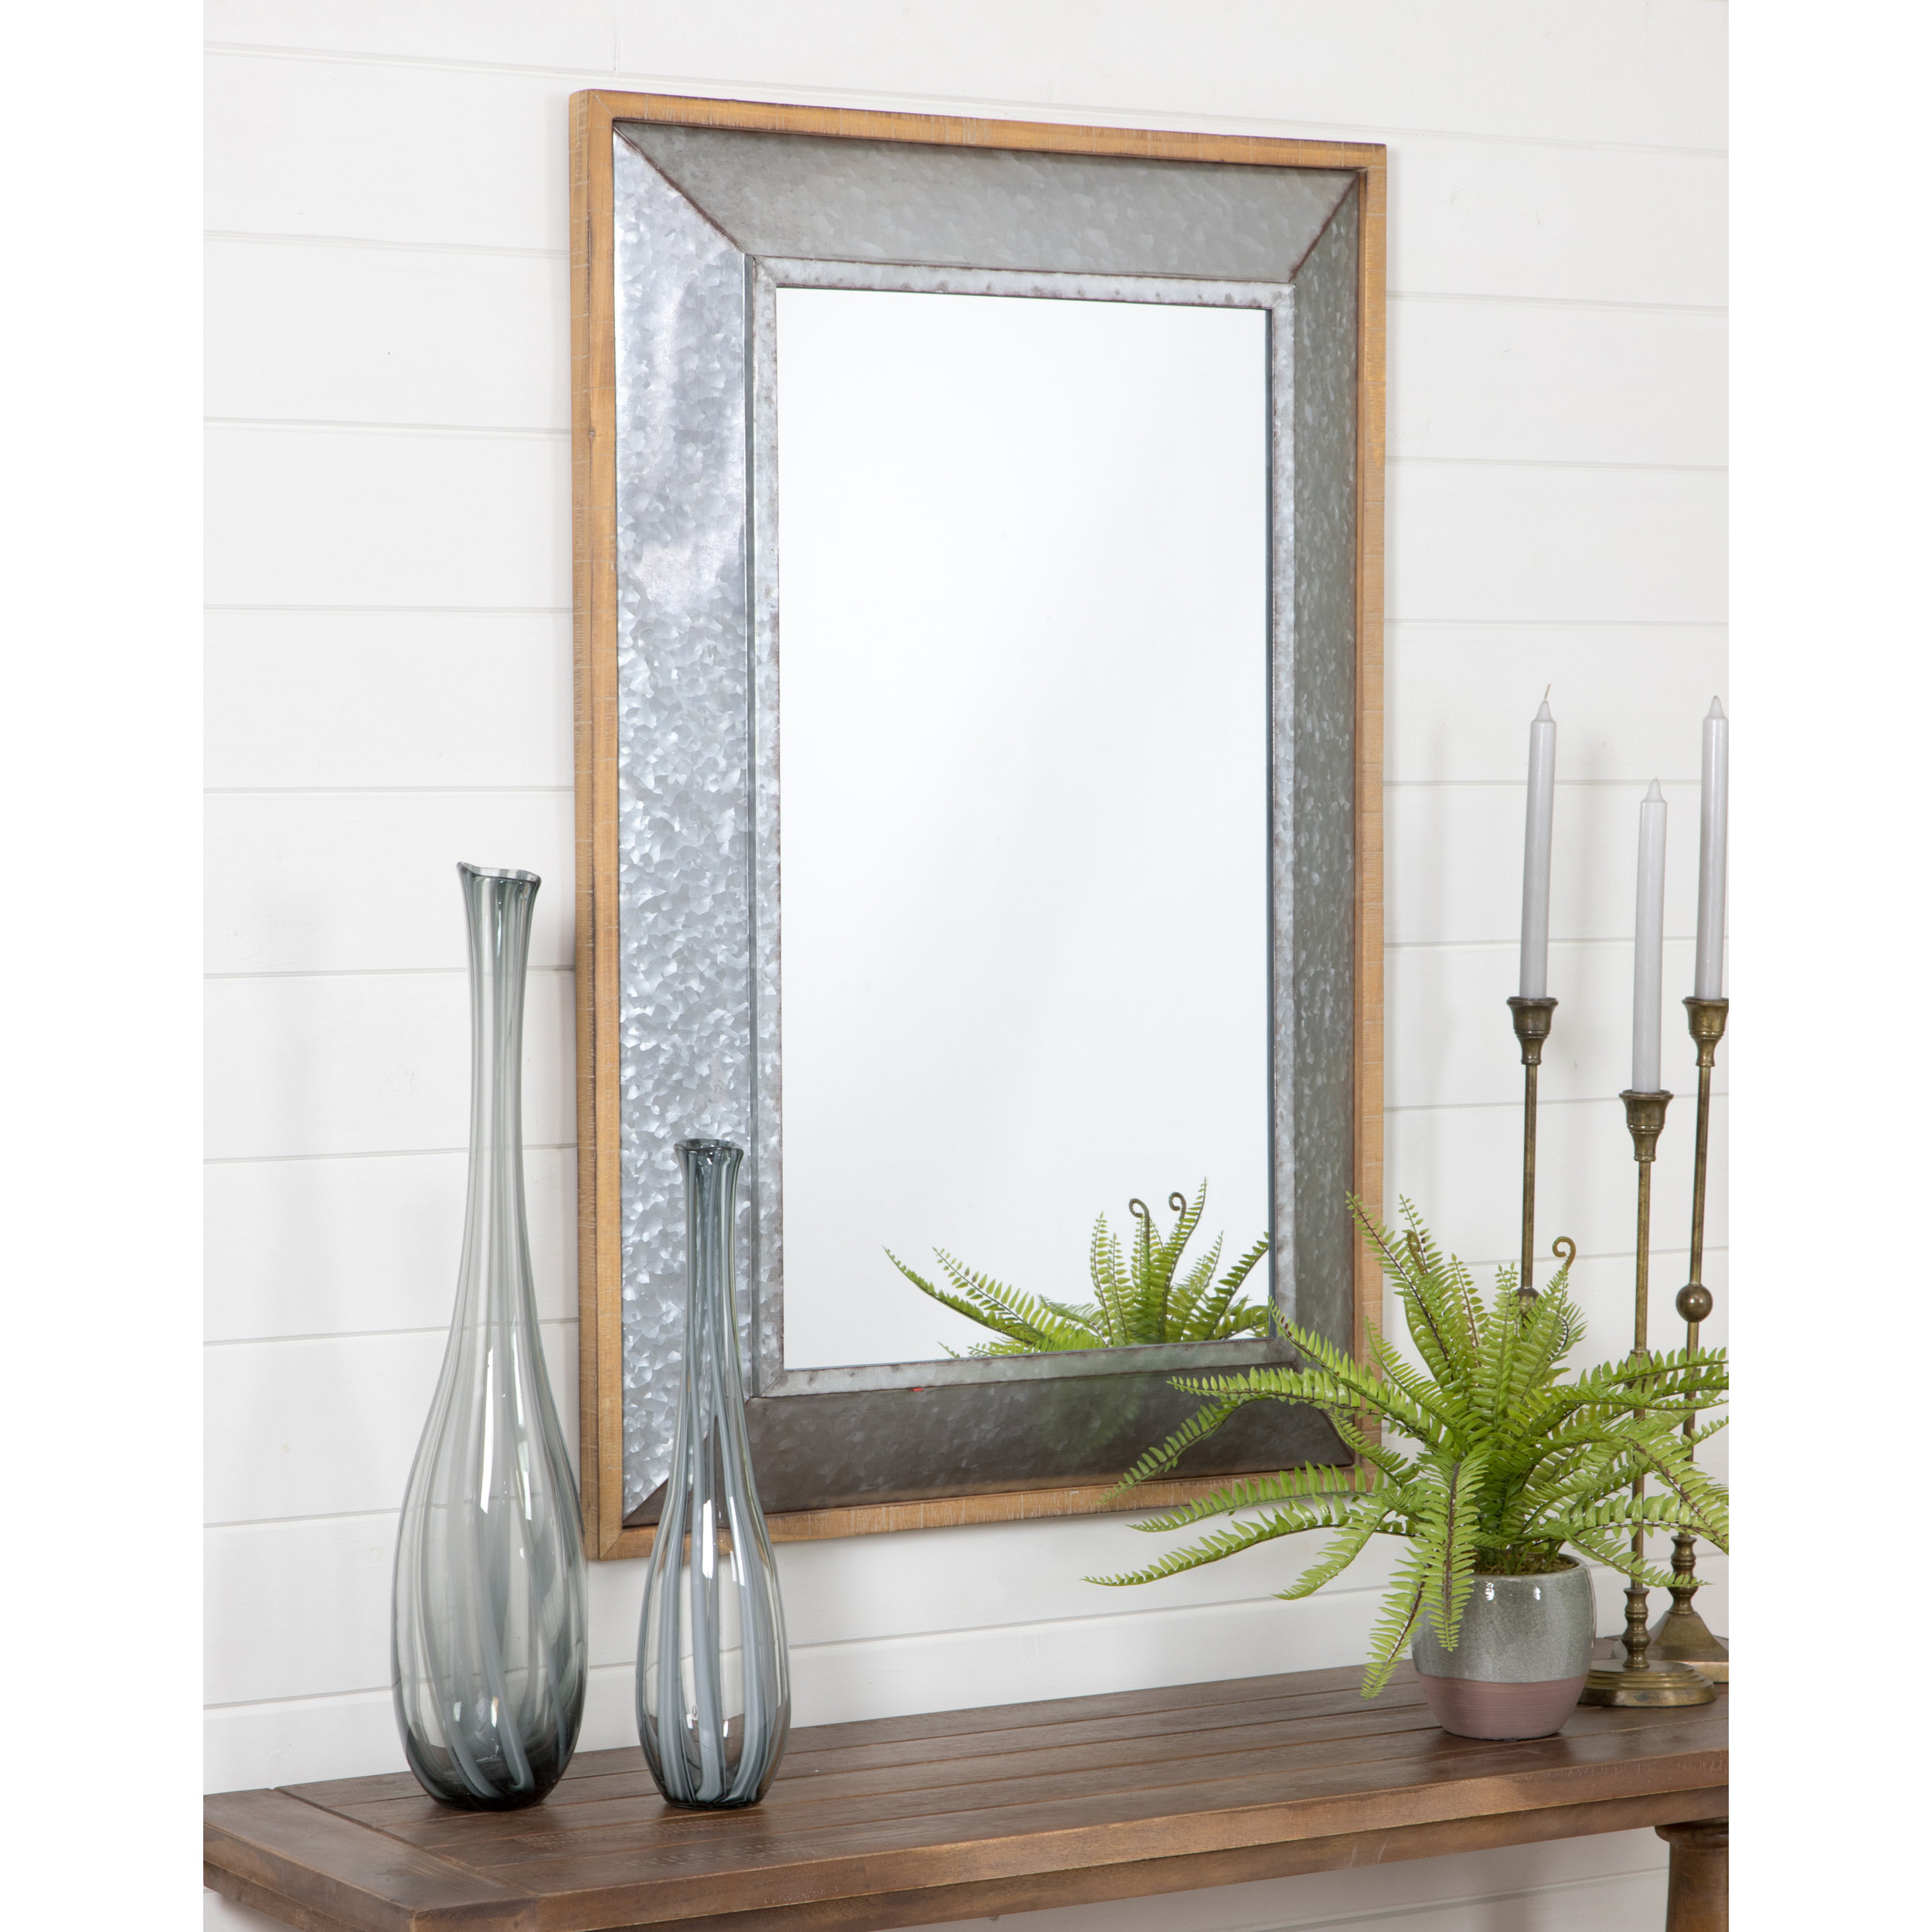 Dillinger Farmhouse Wall Mirror With Epinal Shabby Elegance Wall Mirrors (View 8 of 30)